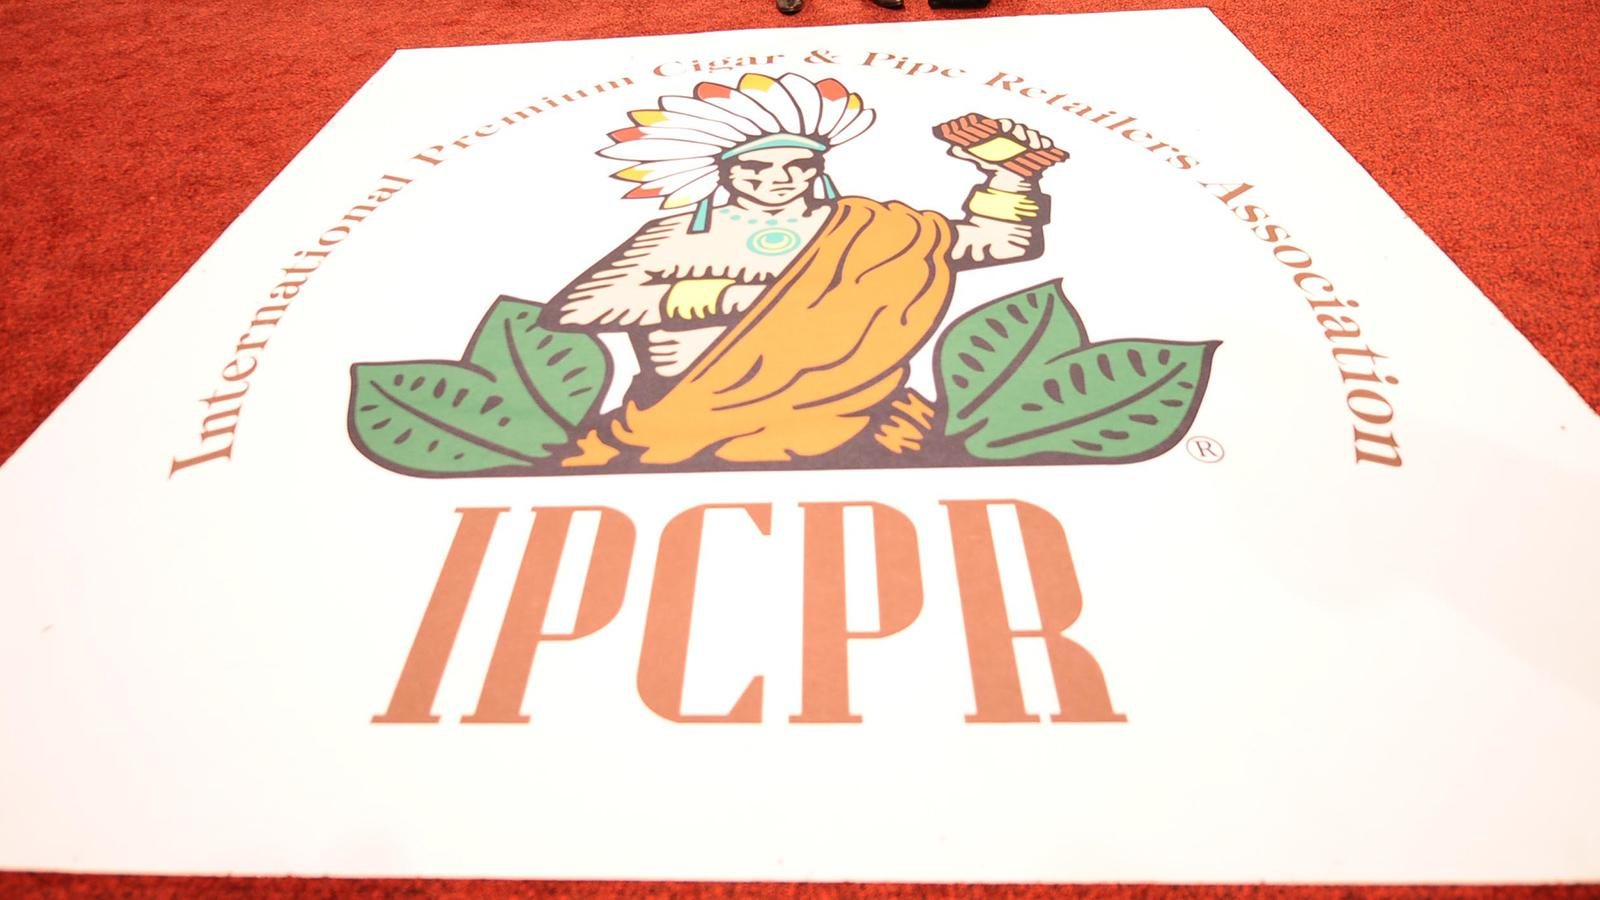 Mark Pursell Steps Down As CEO of IPCPR